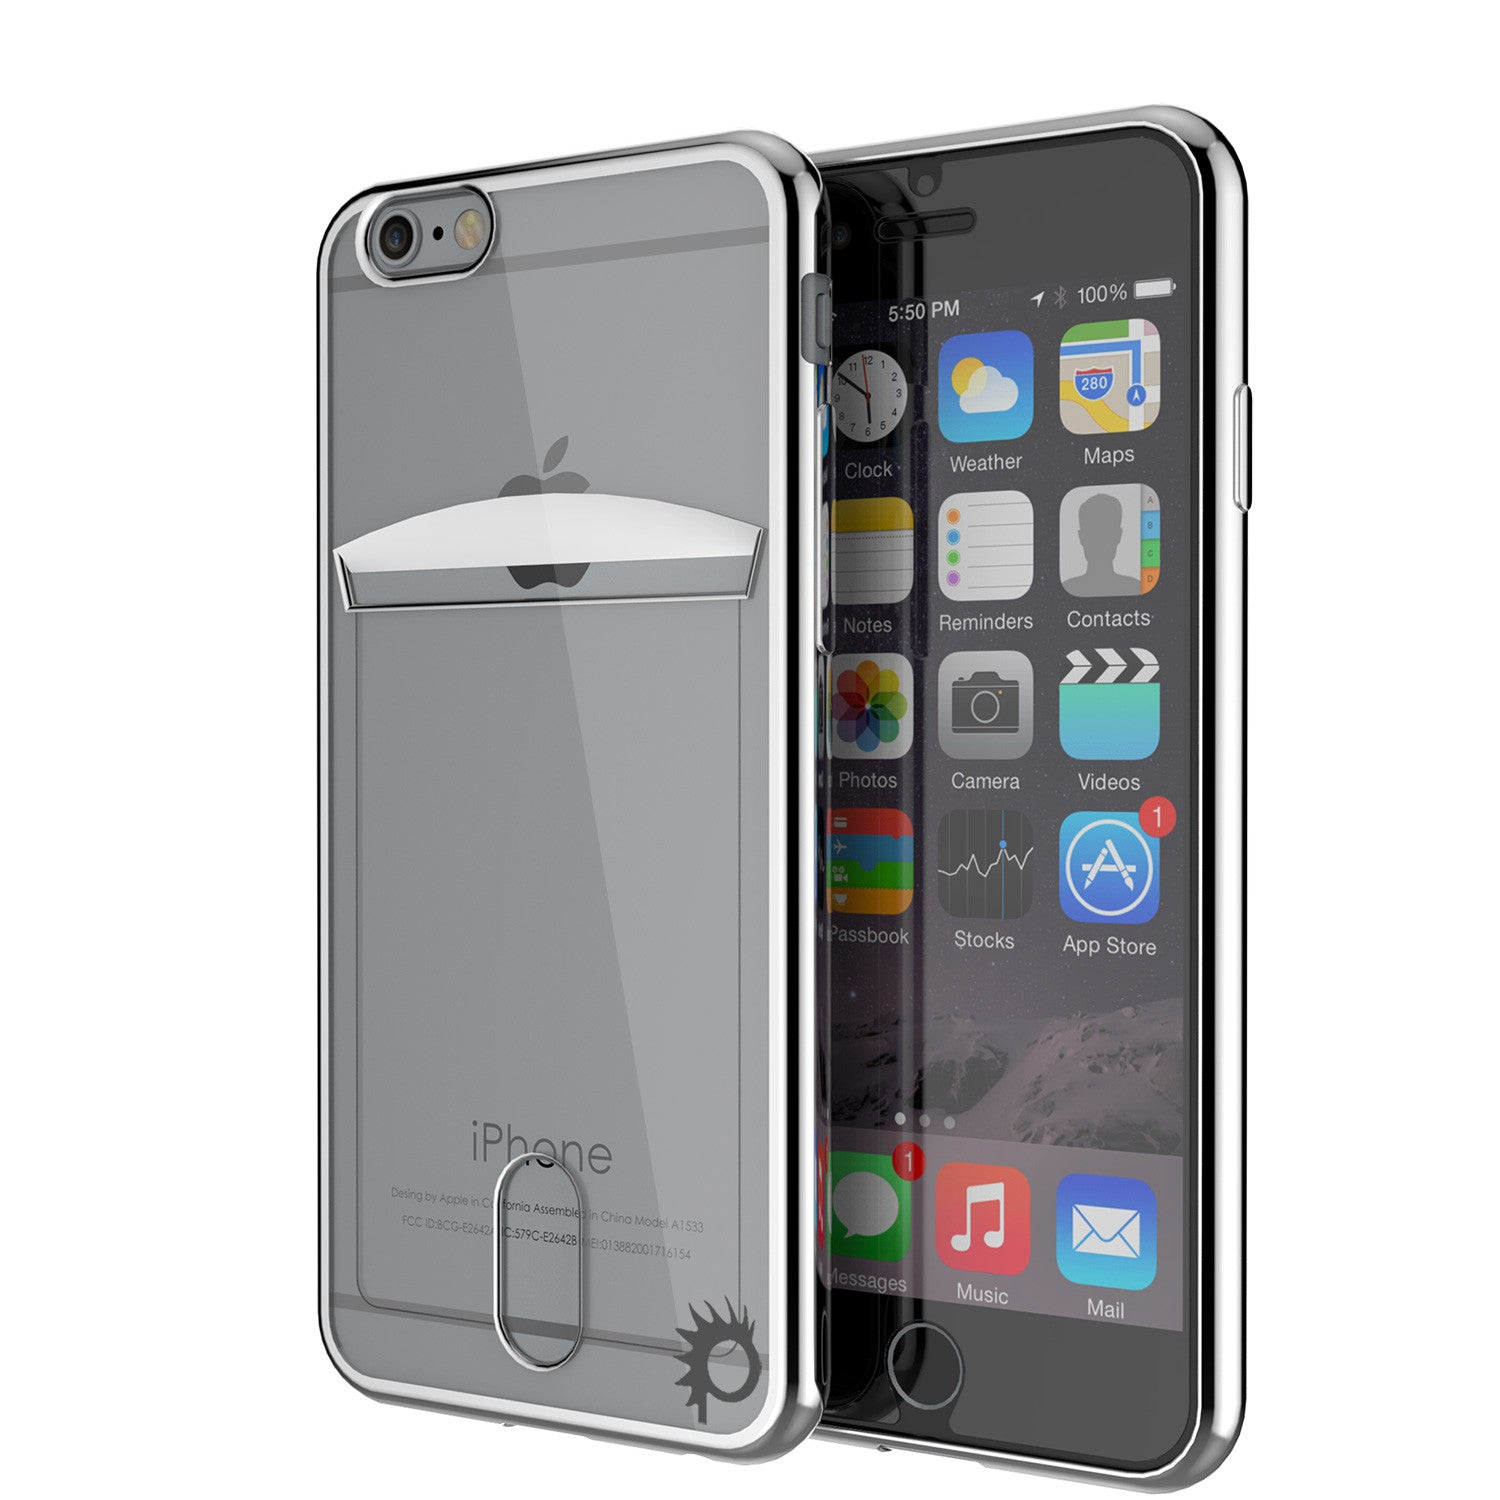 iphone 6 case screen protector